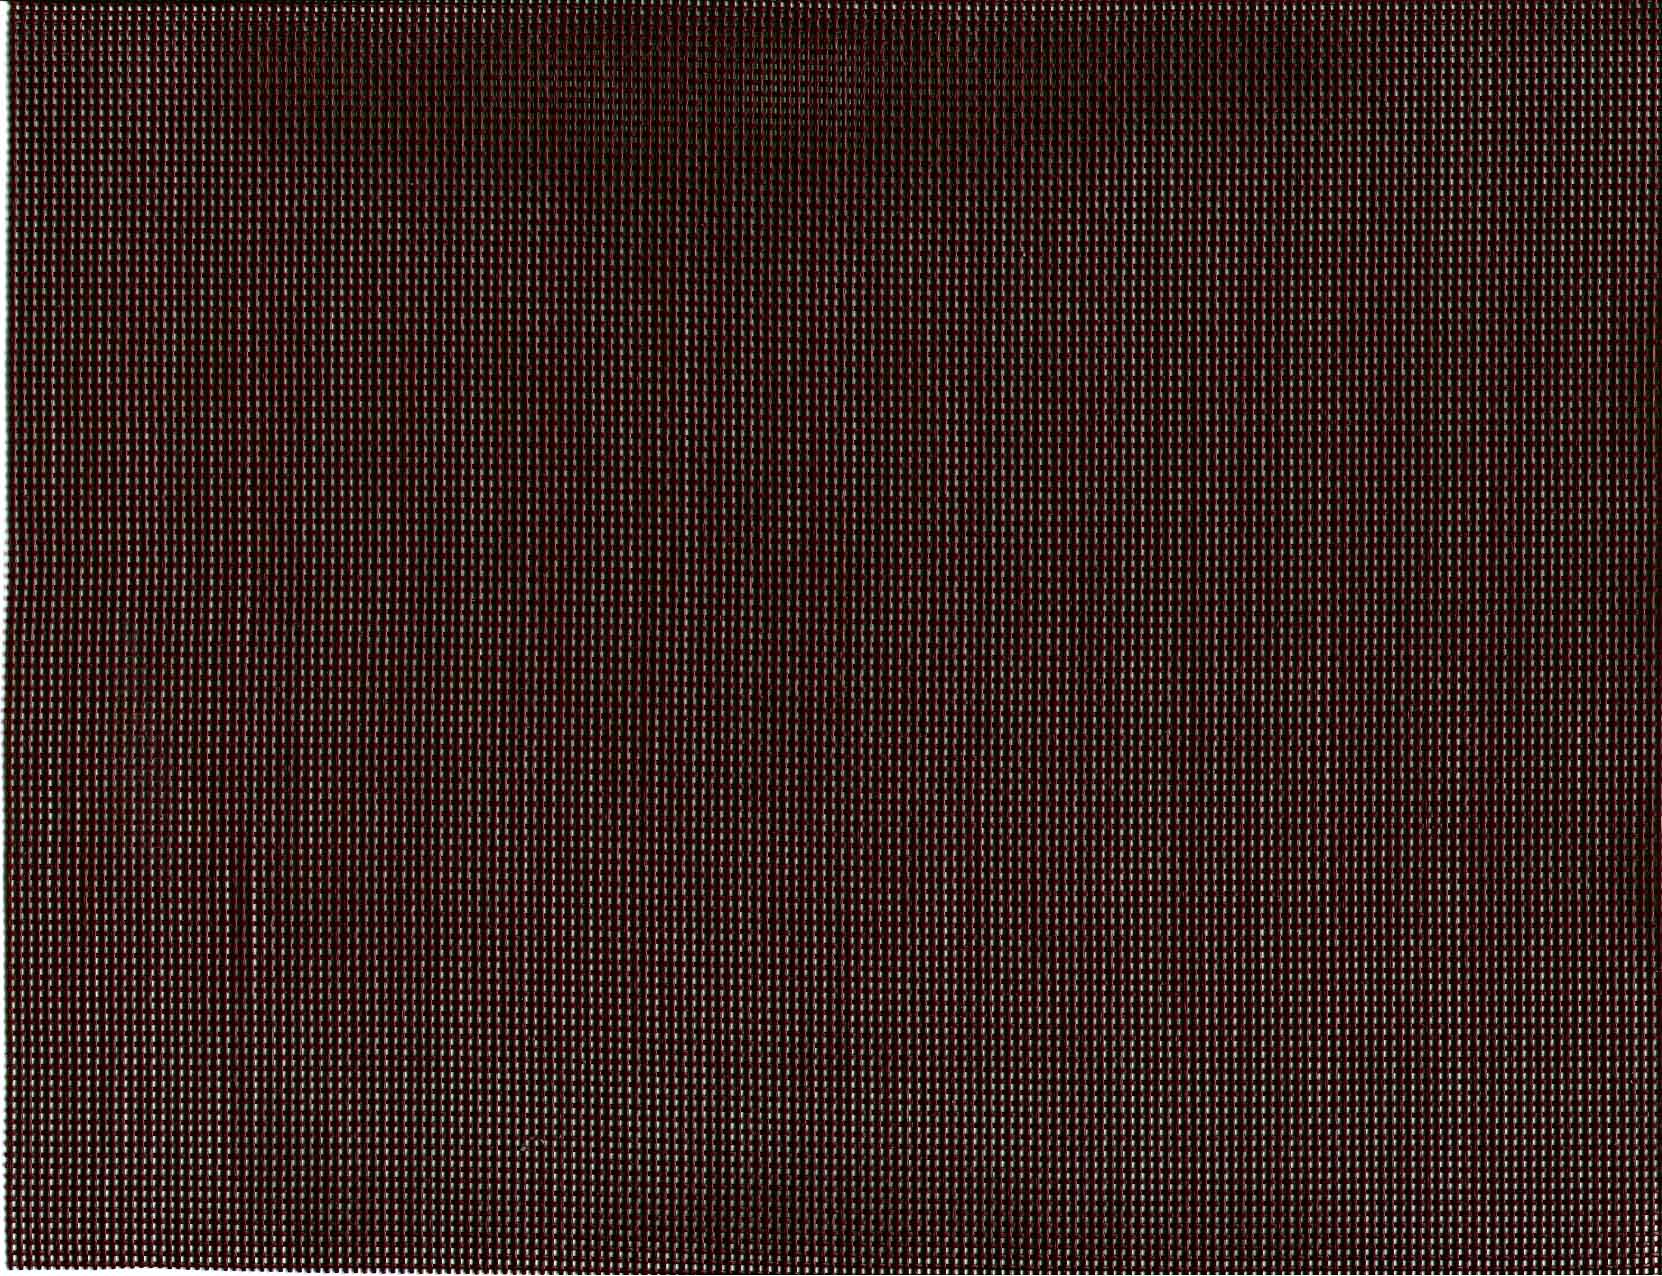 vinyl mesh fabric for sling chairs revolving chair brands in india custom replacement slings patio furniture